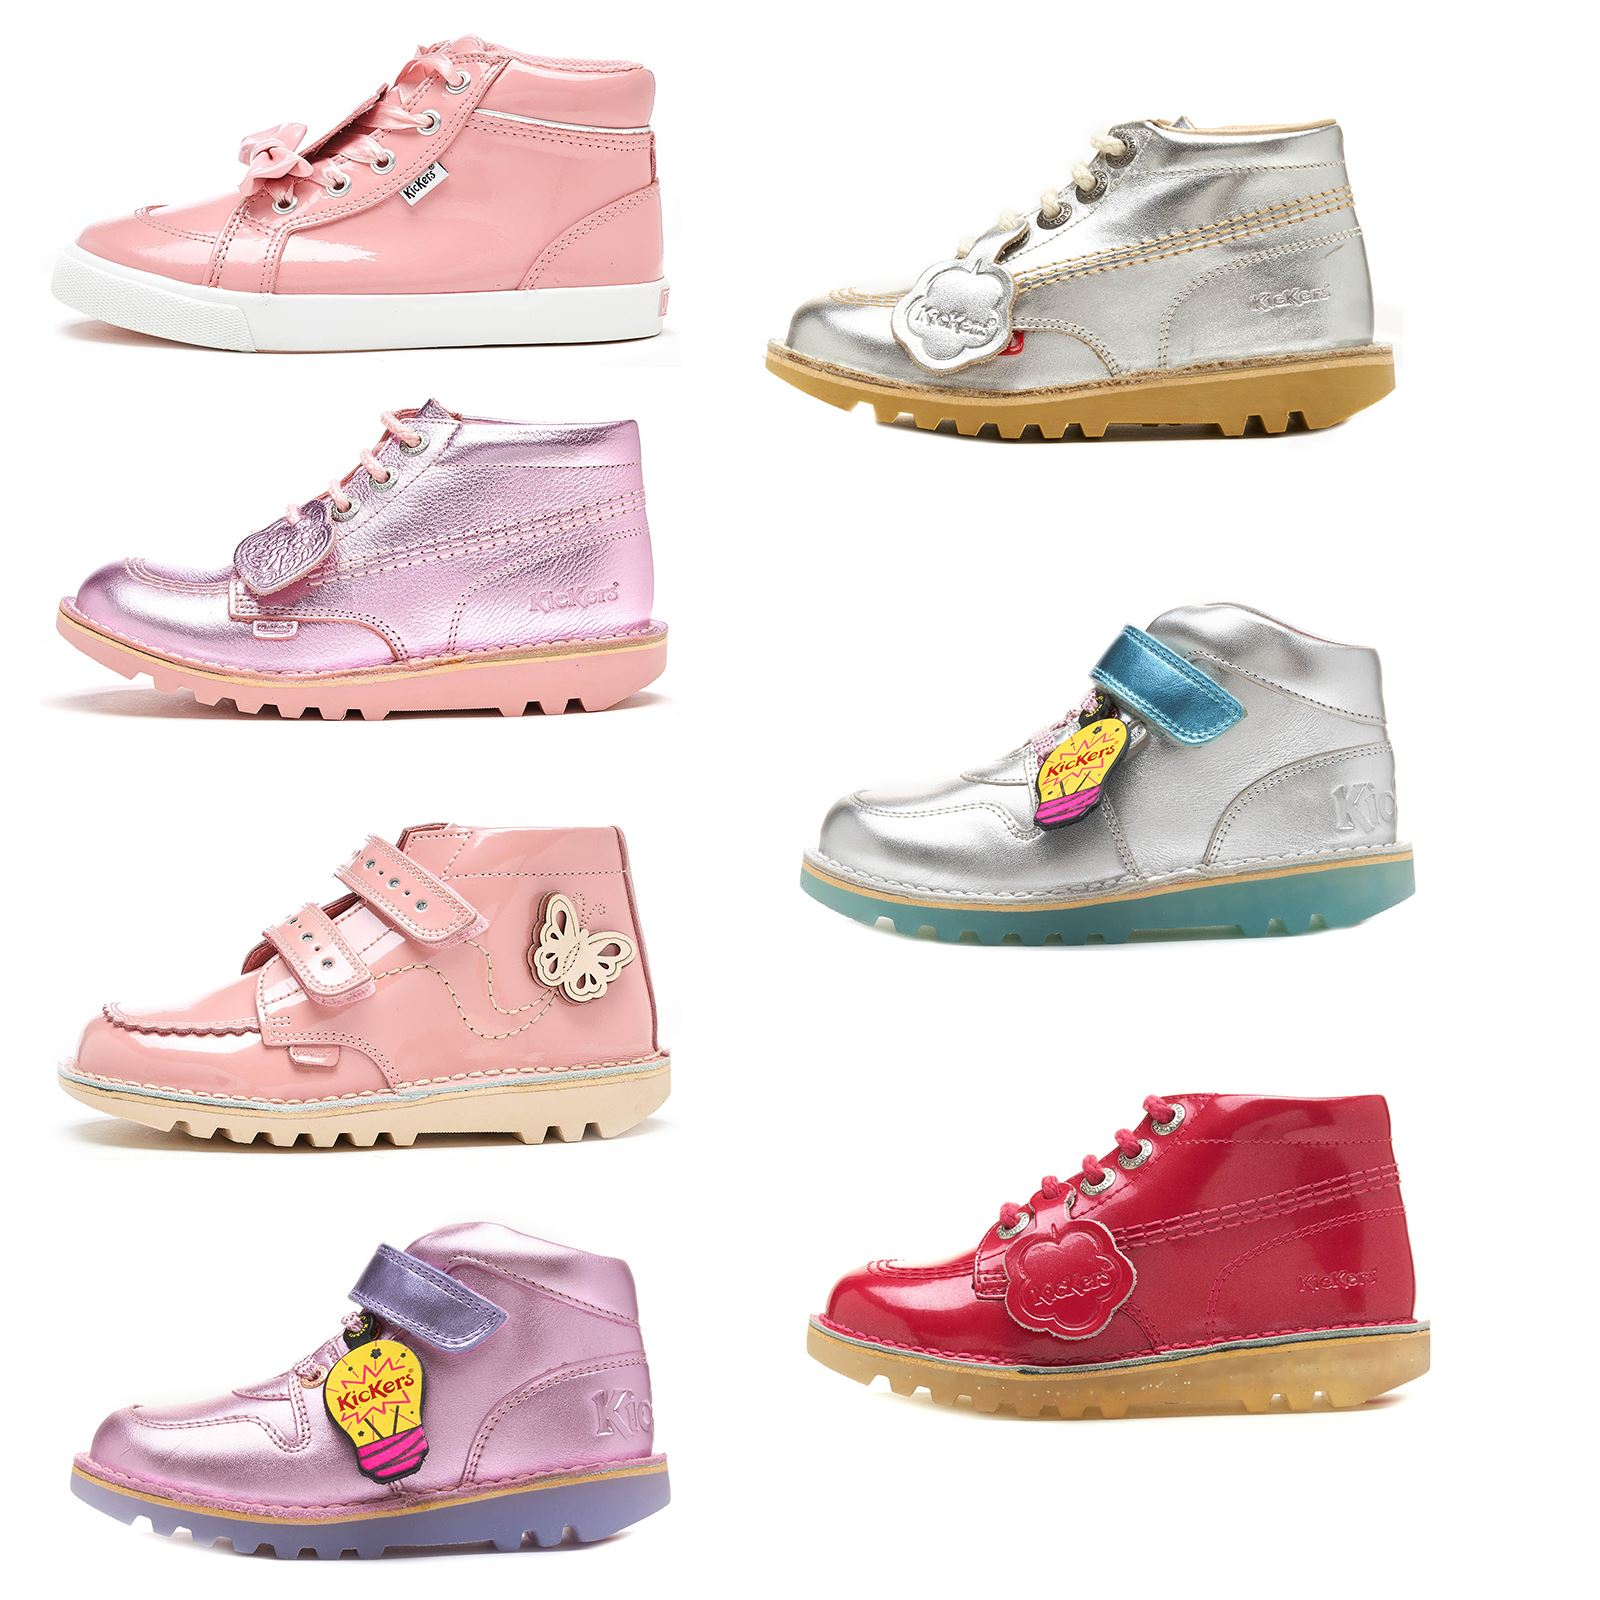 ae87cab3c9305 Details about Kickers Hi Kids & Junior Shiny Metallic Boots Strap & Lace  Bow in Pastel & Black